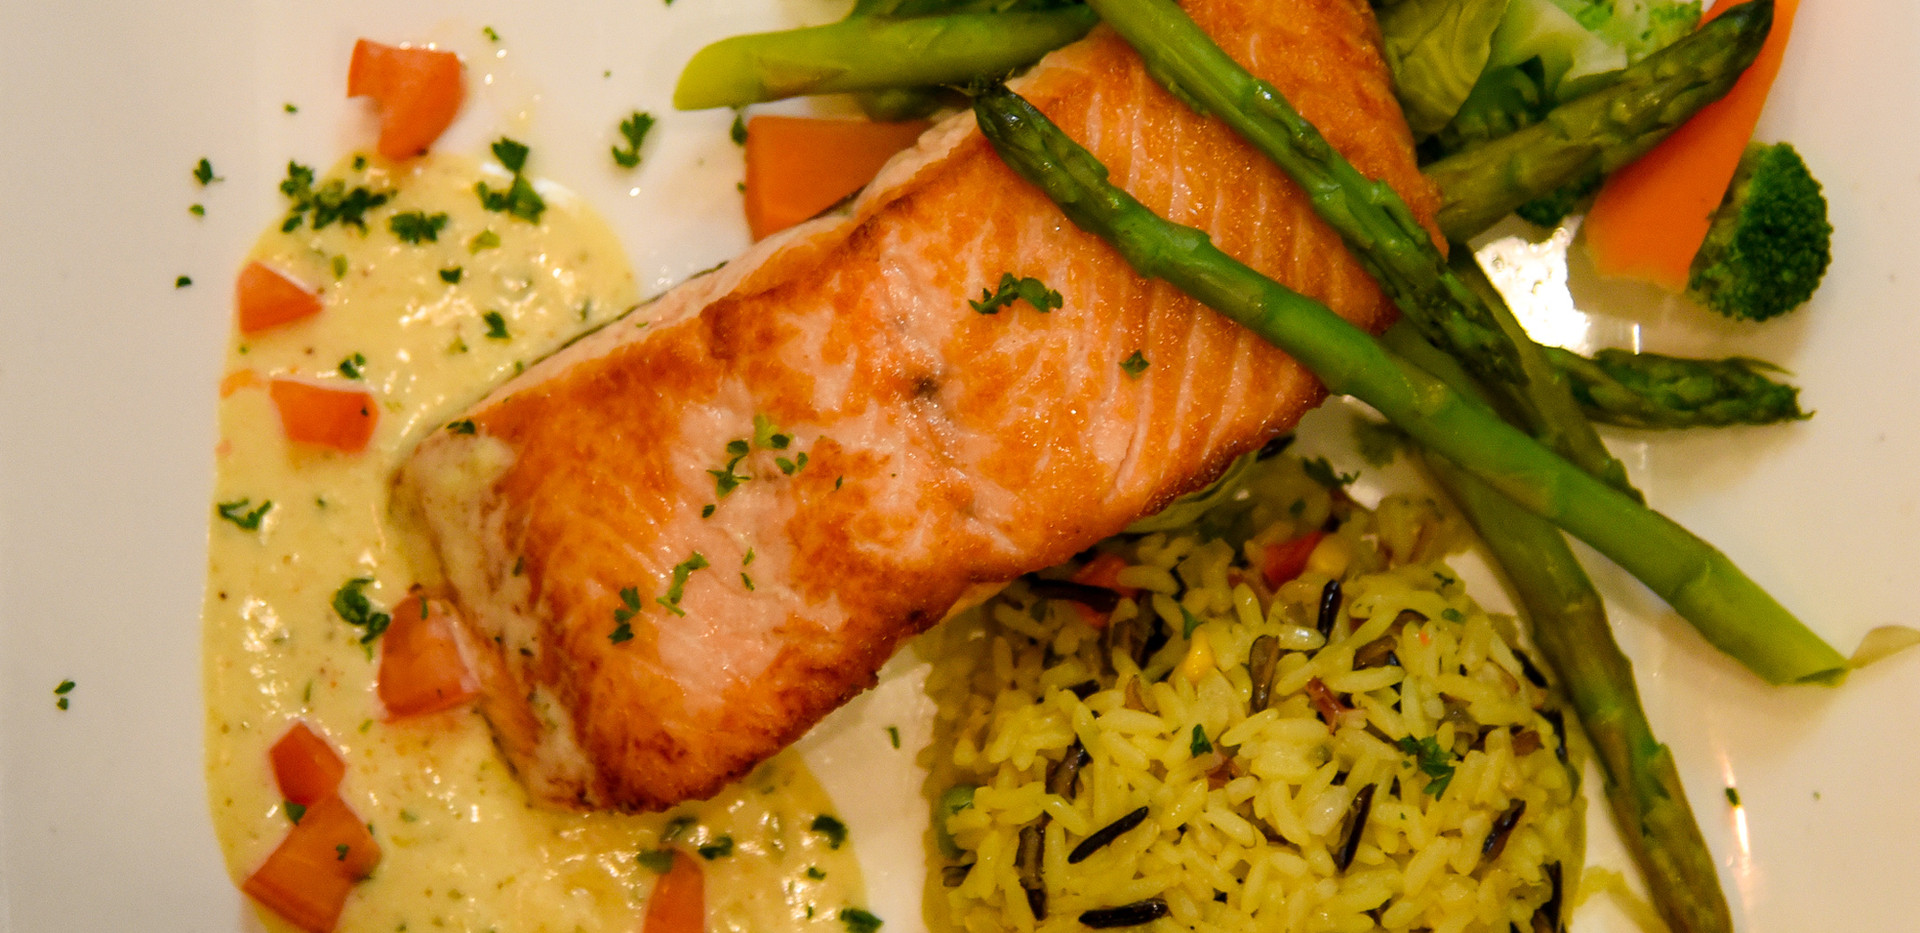 Salmon with rice pilaf and mixed veggies